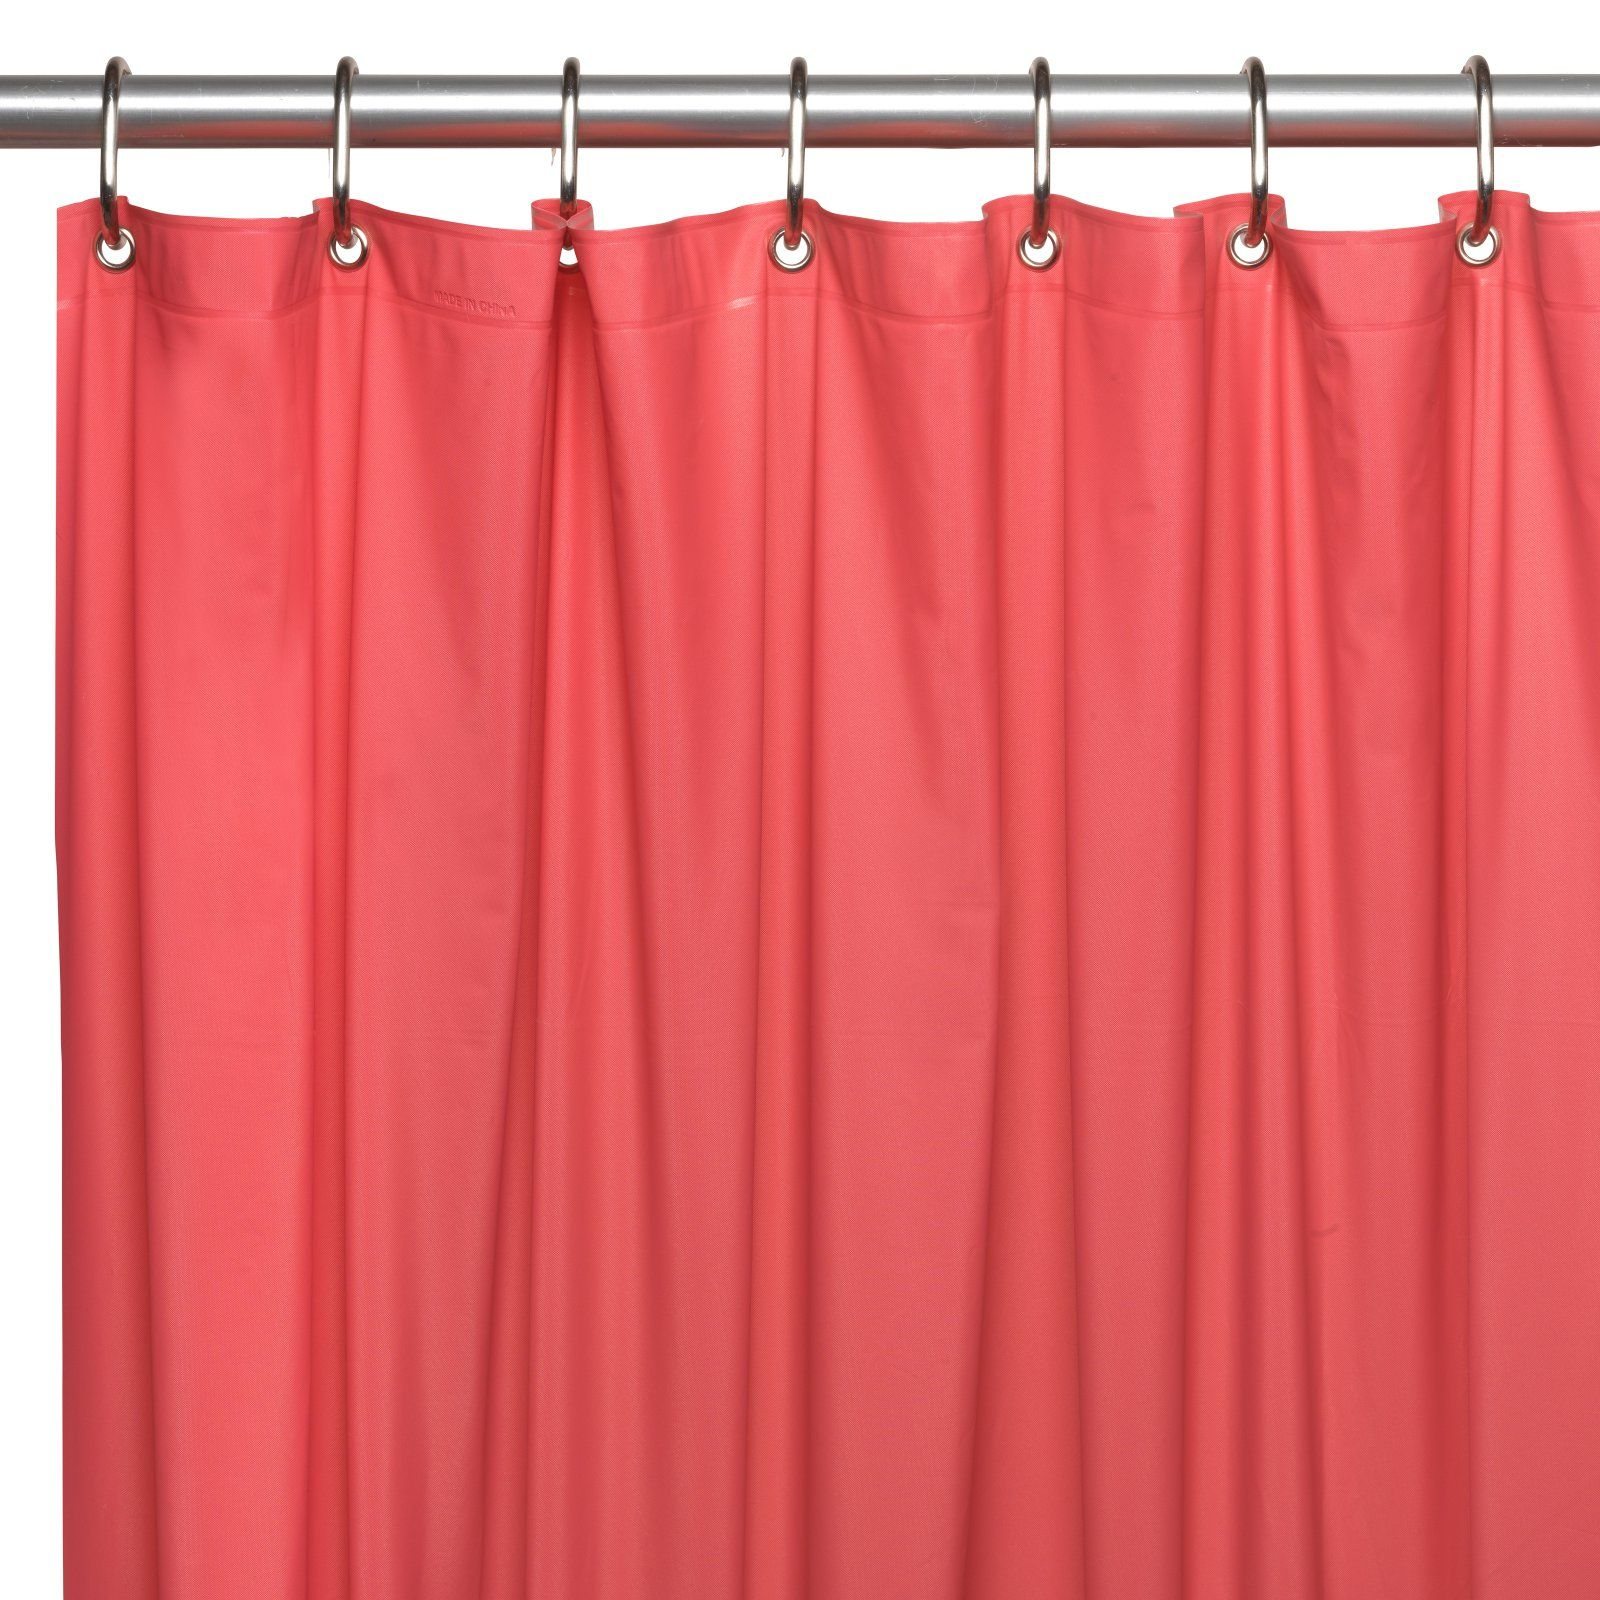 Carnation Home Fashions Hotel Collection Vinyl Shower Curtain